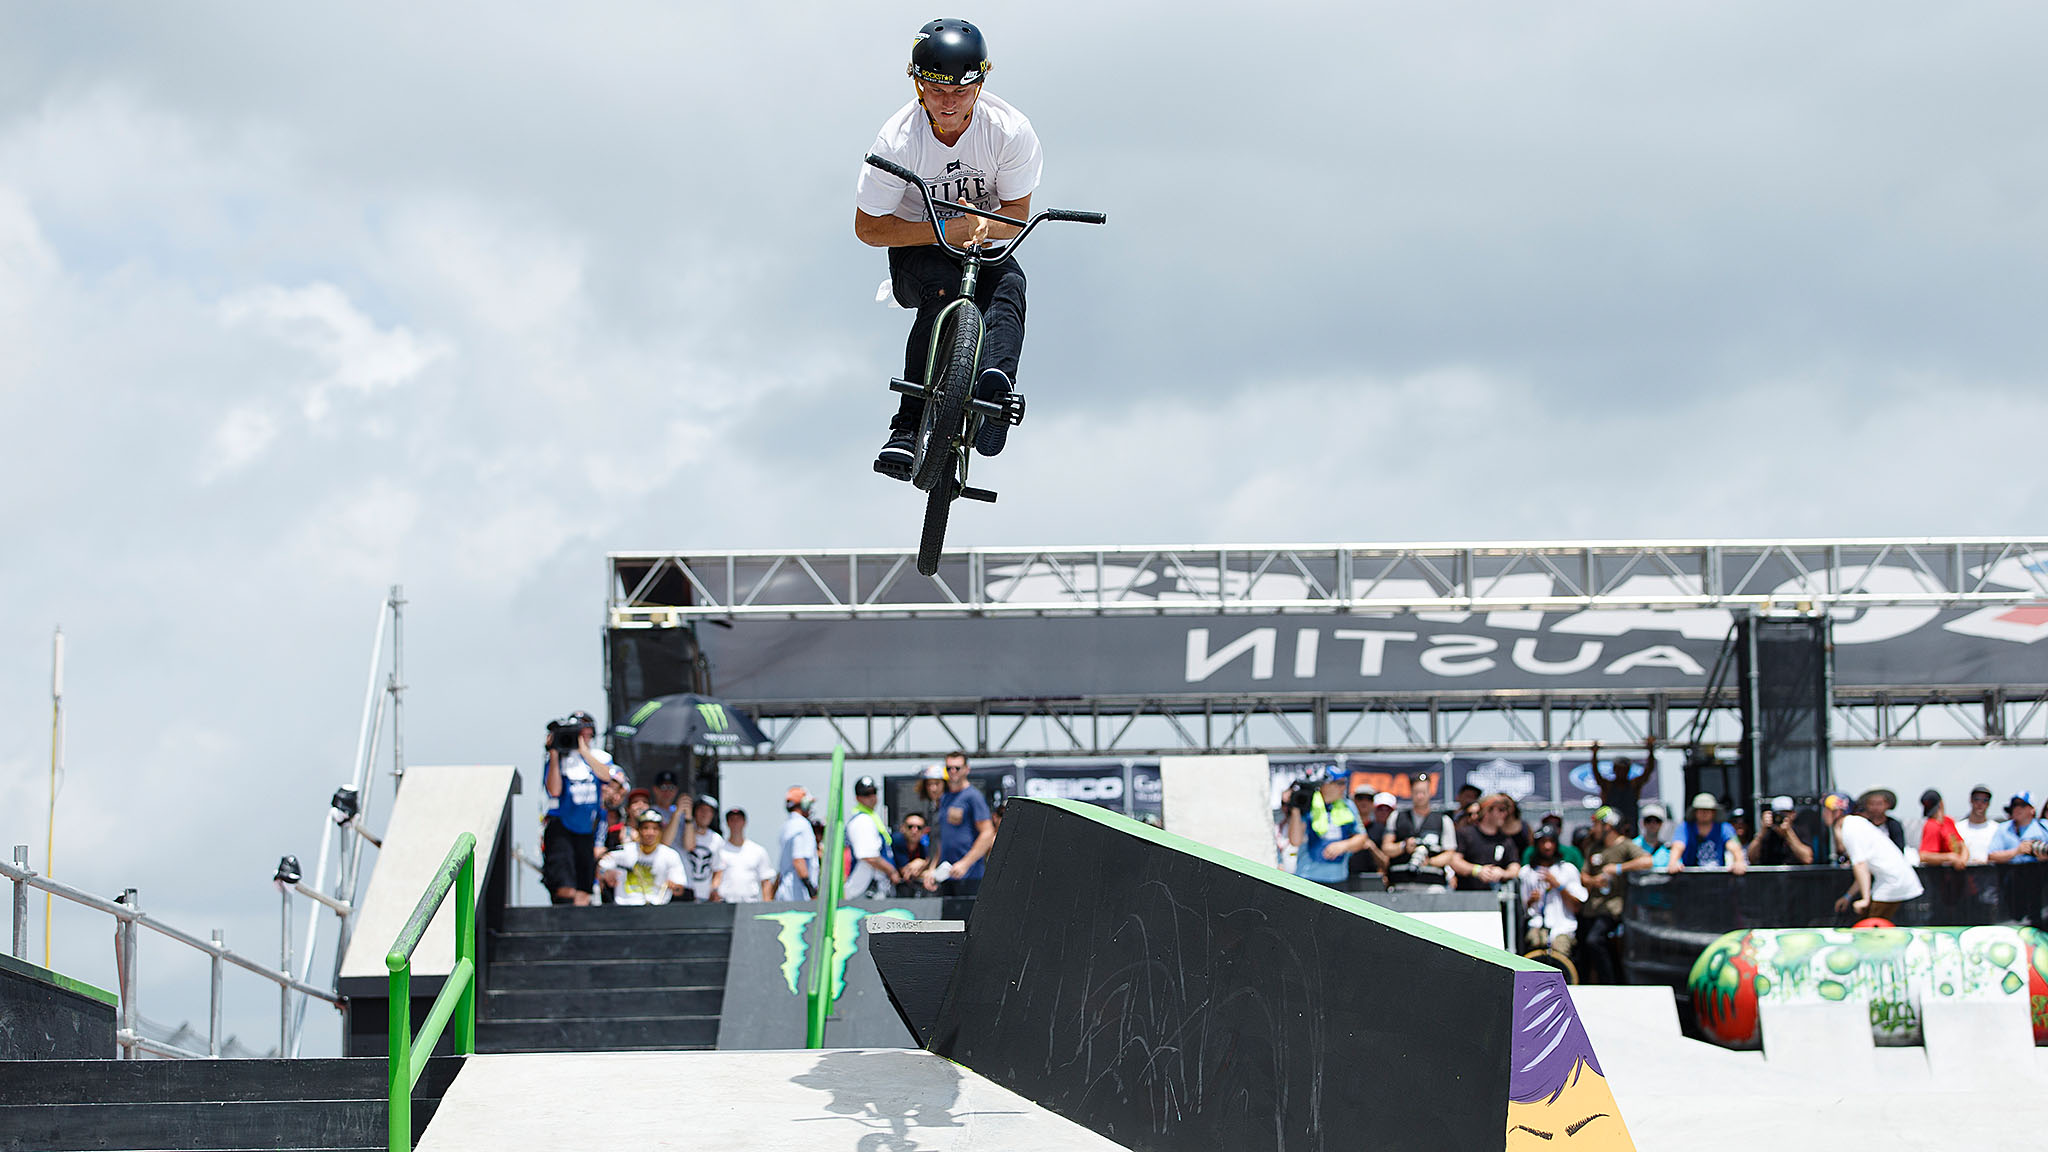 One of the few BMX riders who can easily compete across multiple disciplines at X Games, Haro/Nike pro Dennis Enarson entered BMX Street on Saturday at X Games Austin and finished with a bronze medal. Enarson's runs featured effortless 360 foot jam nose picks to fakie and, as pictured here, stylish barspin gaps.